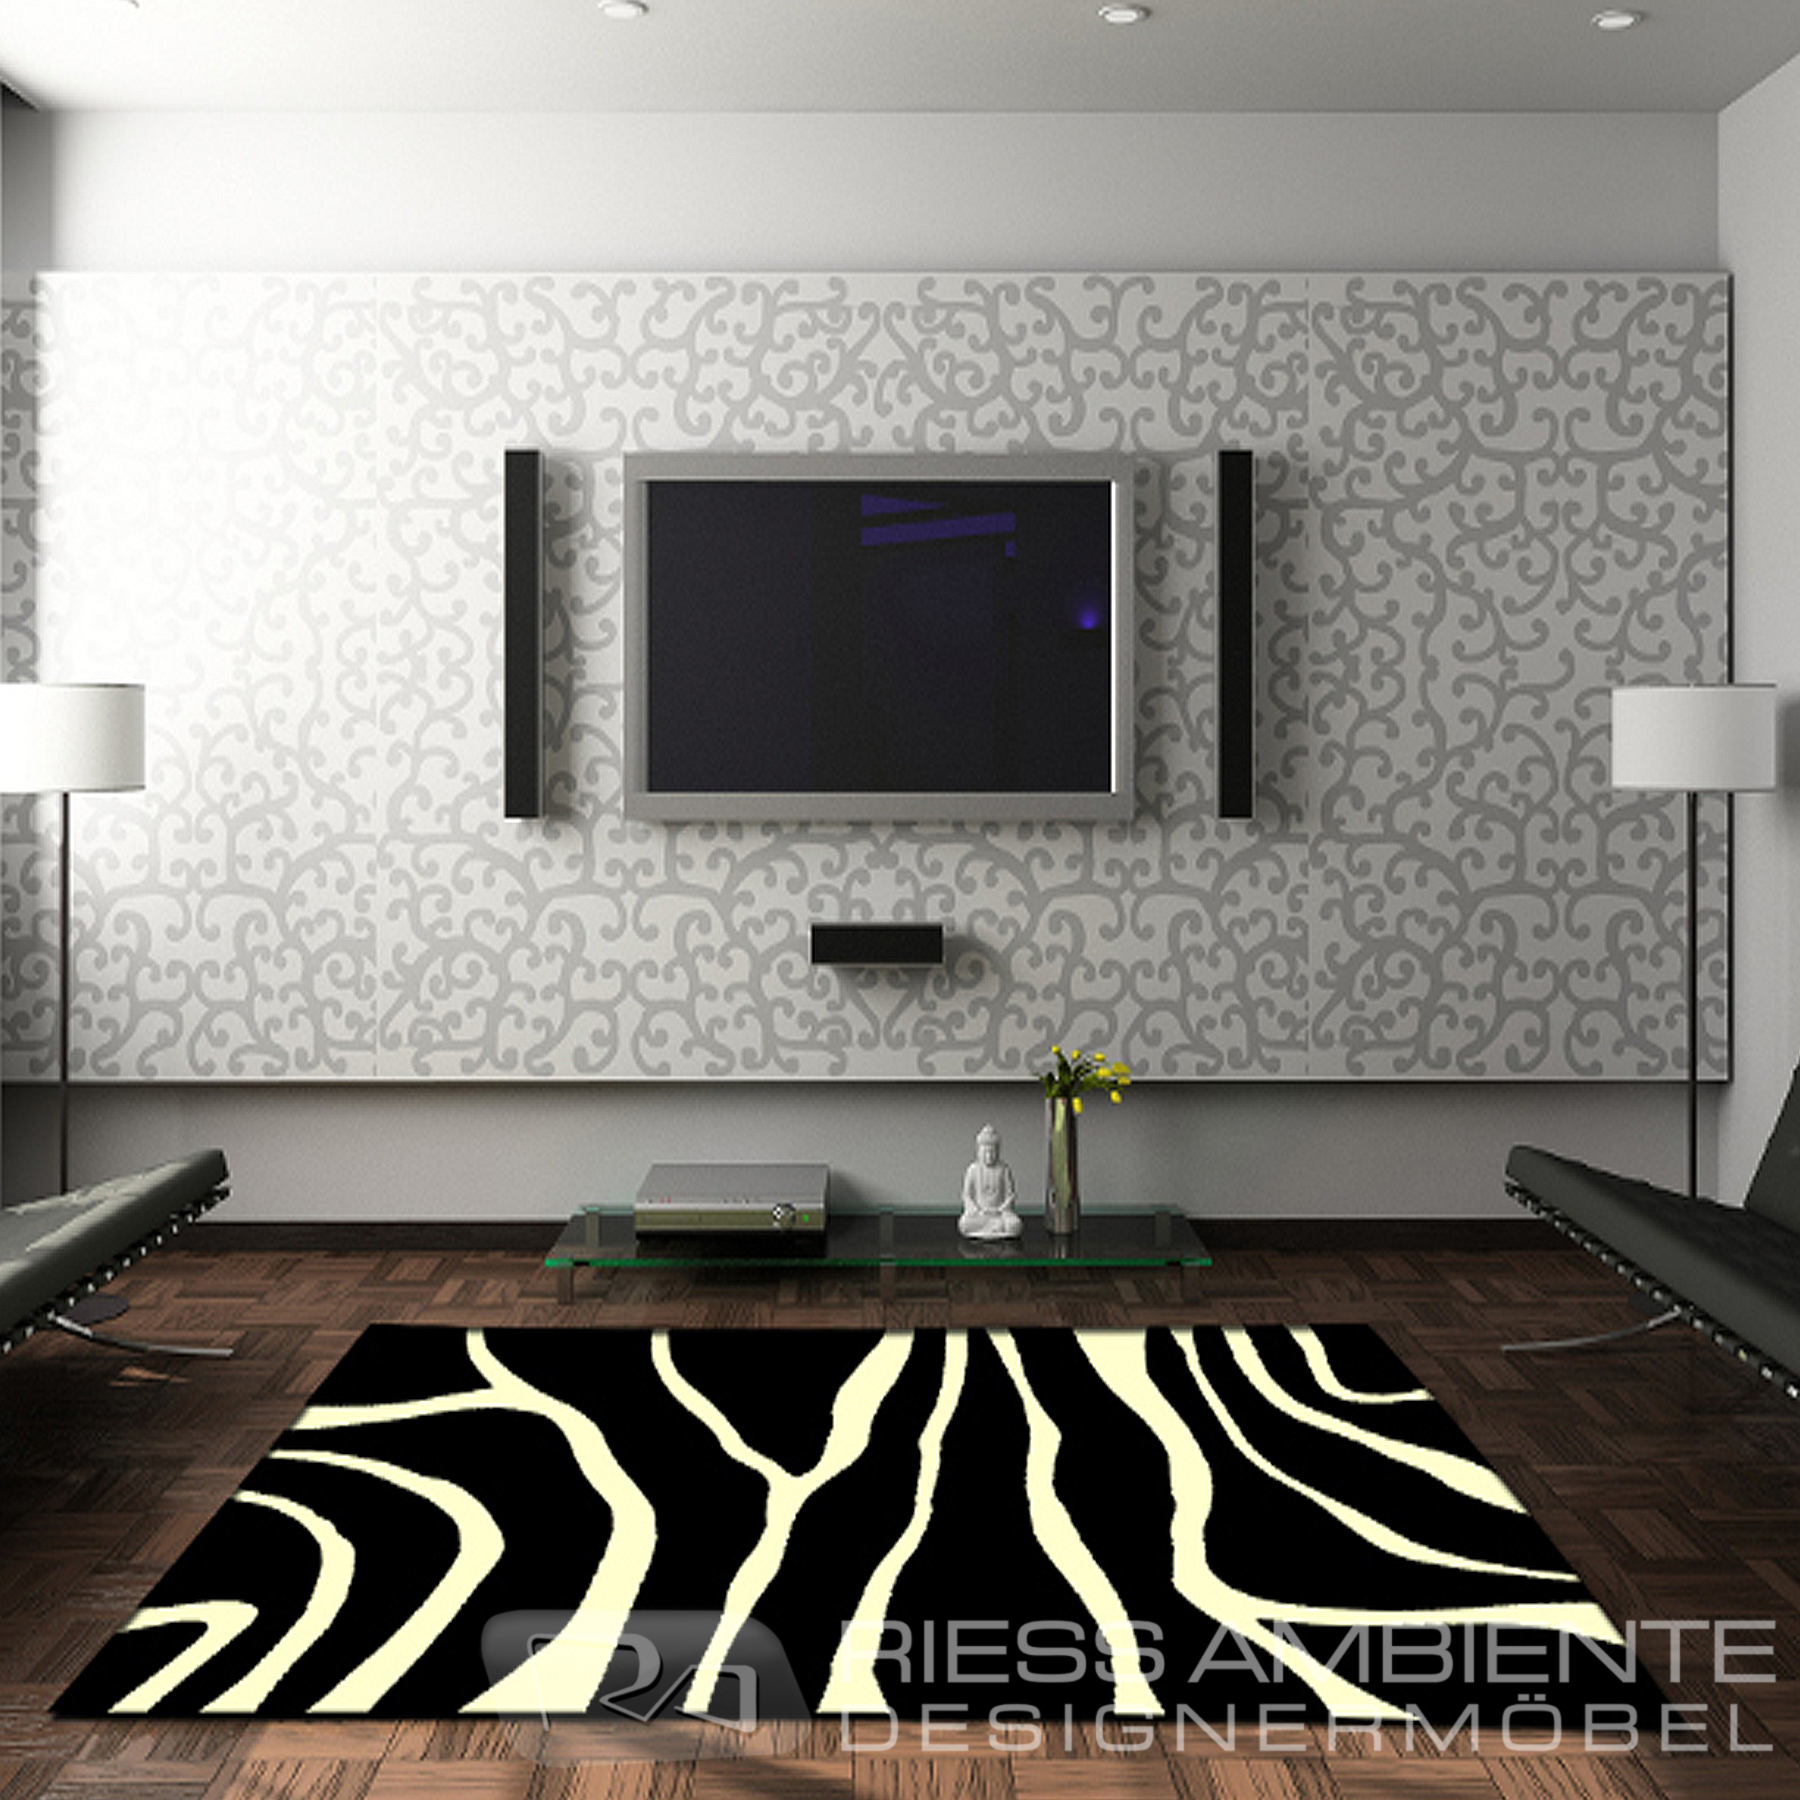 design teppich zebra 160 x 230 schwarz weiss afrika. Black Bedroom Furniture Sets. Home Design Ideas